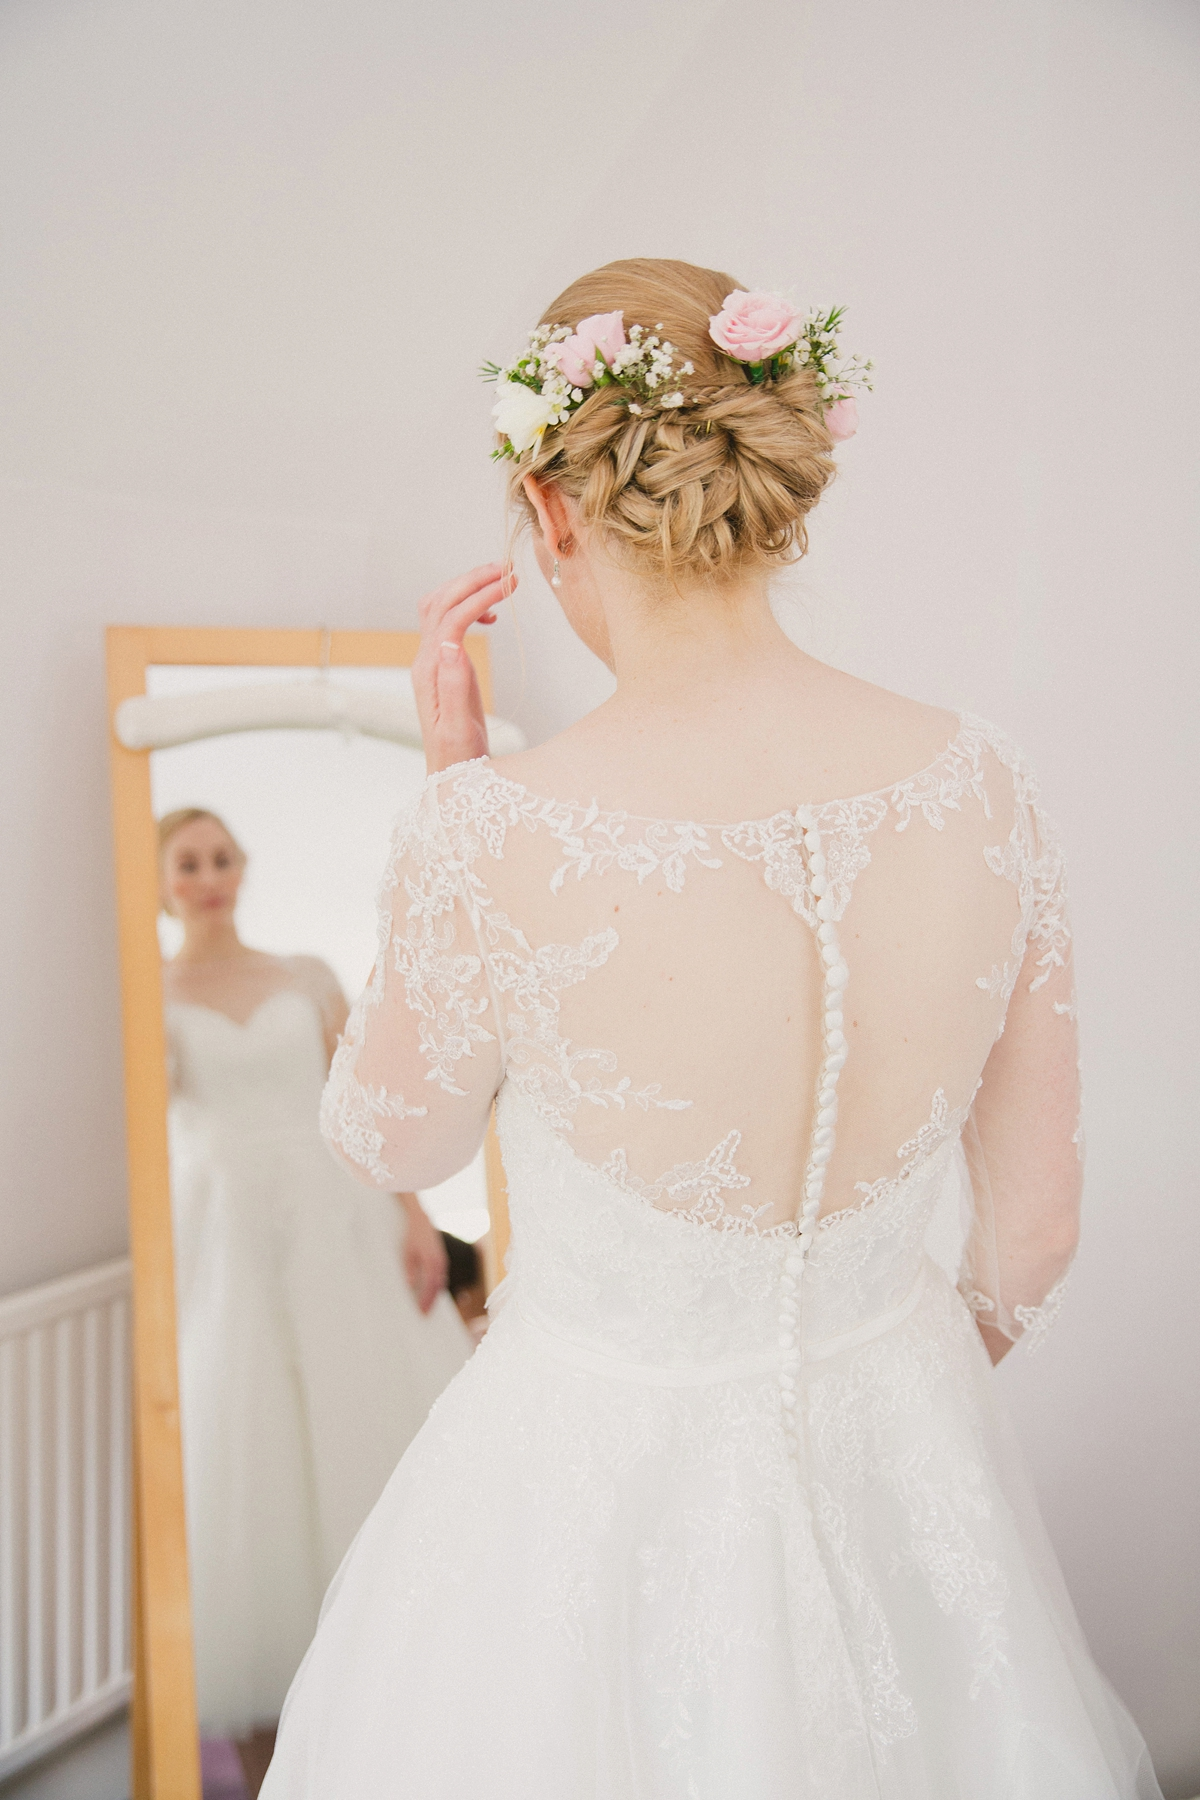 """6b8ece119f s style lace wedding dress - A Tea-Length Gown For A Charming Seaside  Wedding. """""""